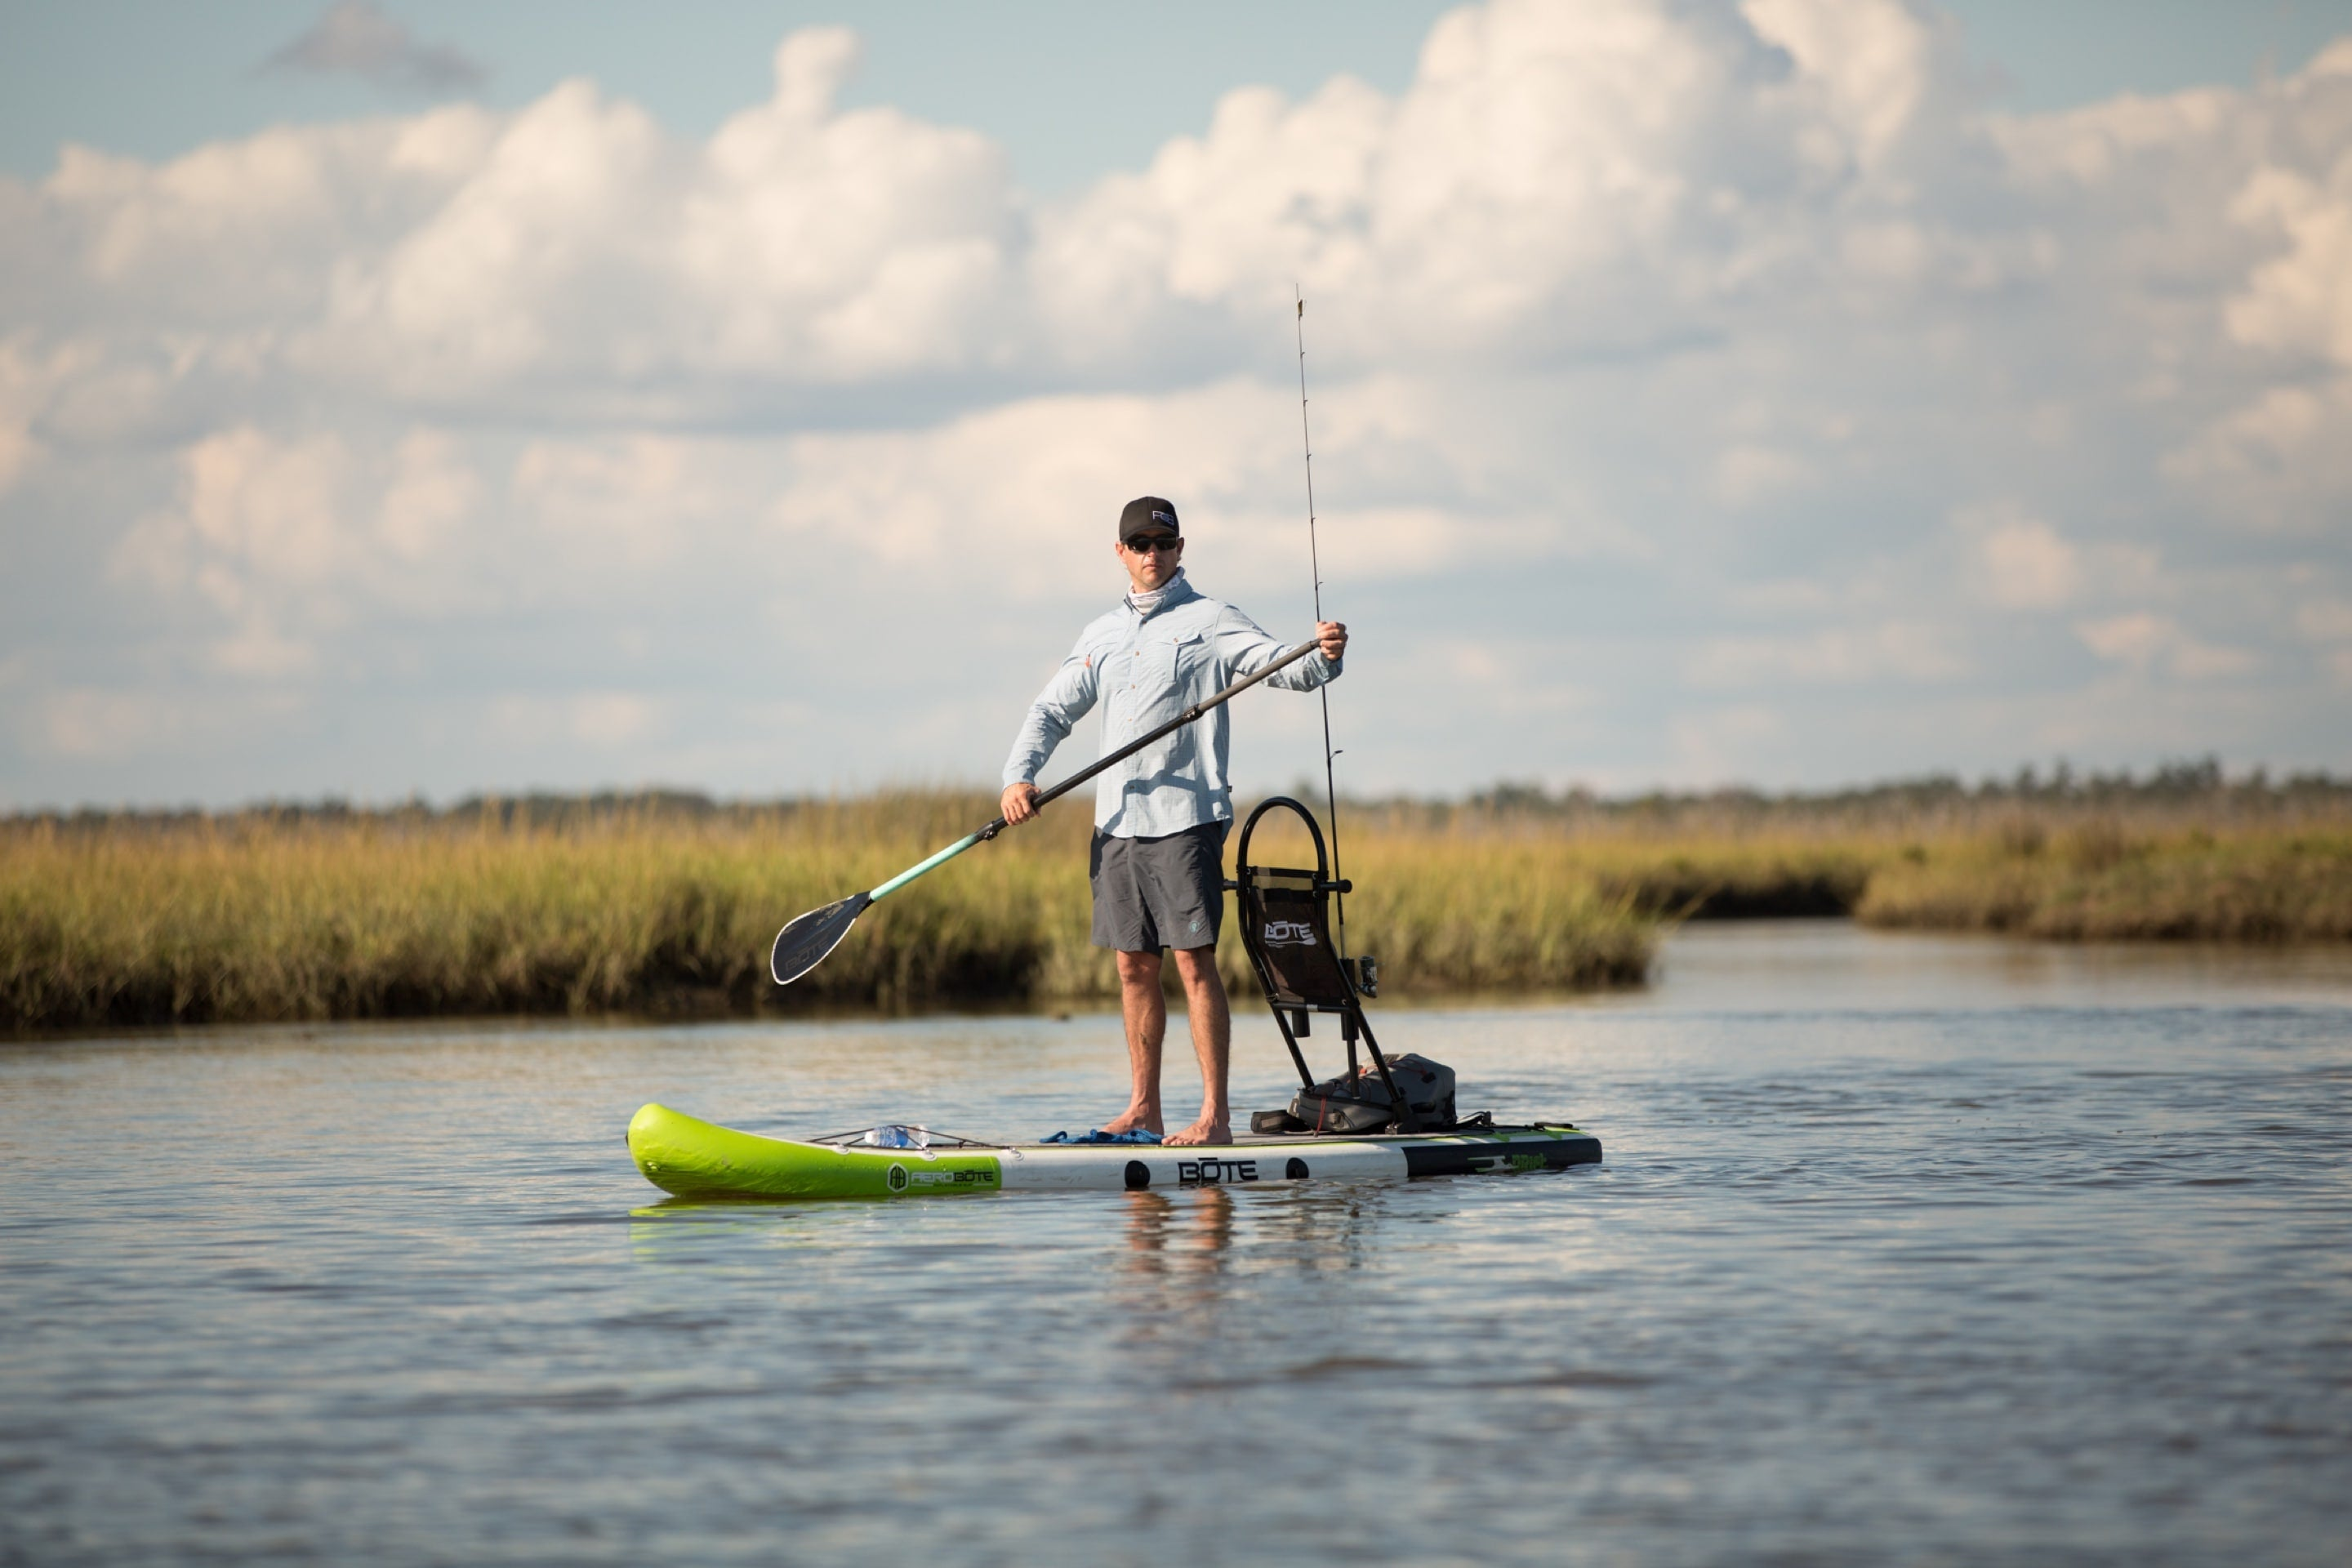 Man looking for fishing spot on BOTE inflatable paddle board